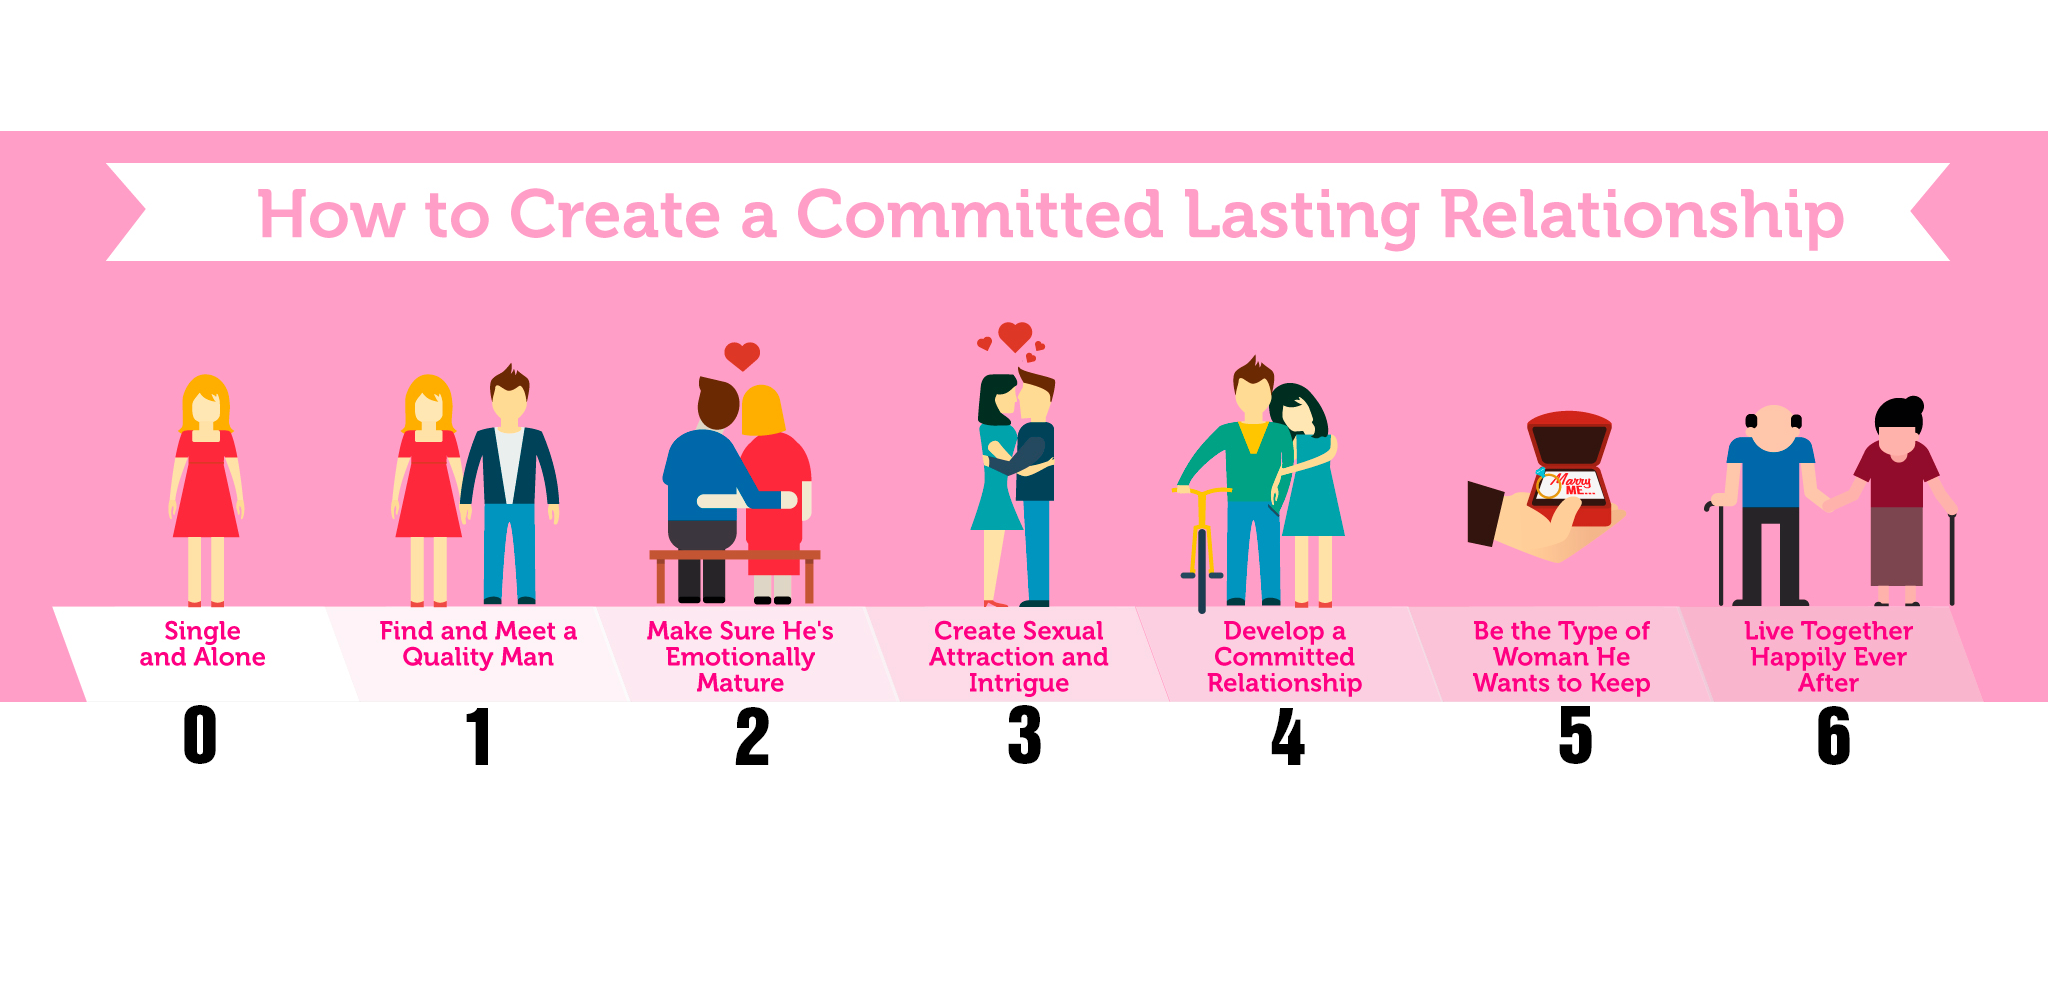 How to Create a Committed, Lasting Relationship